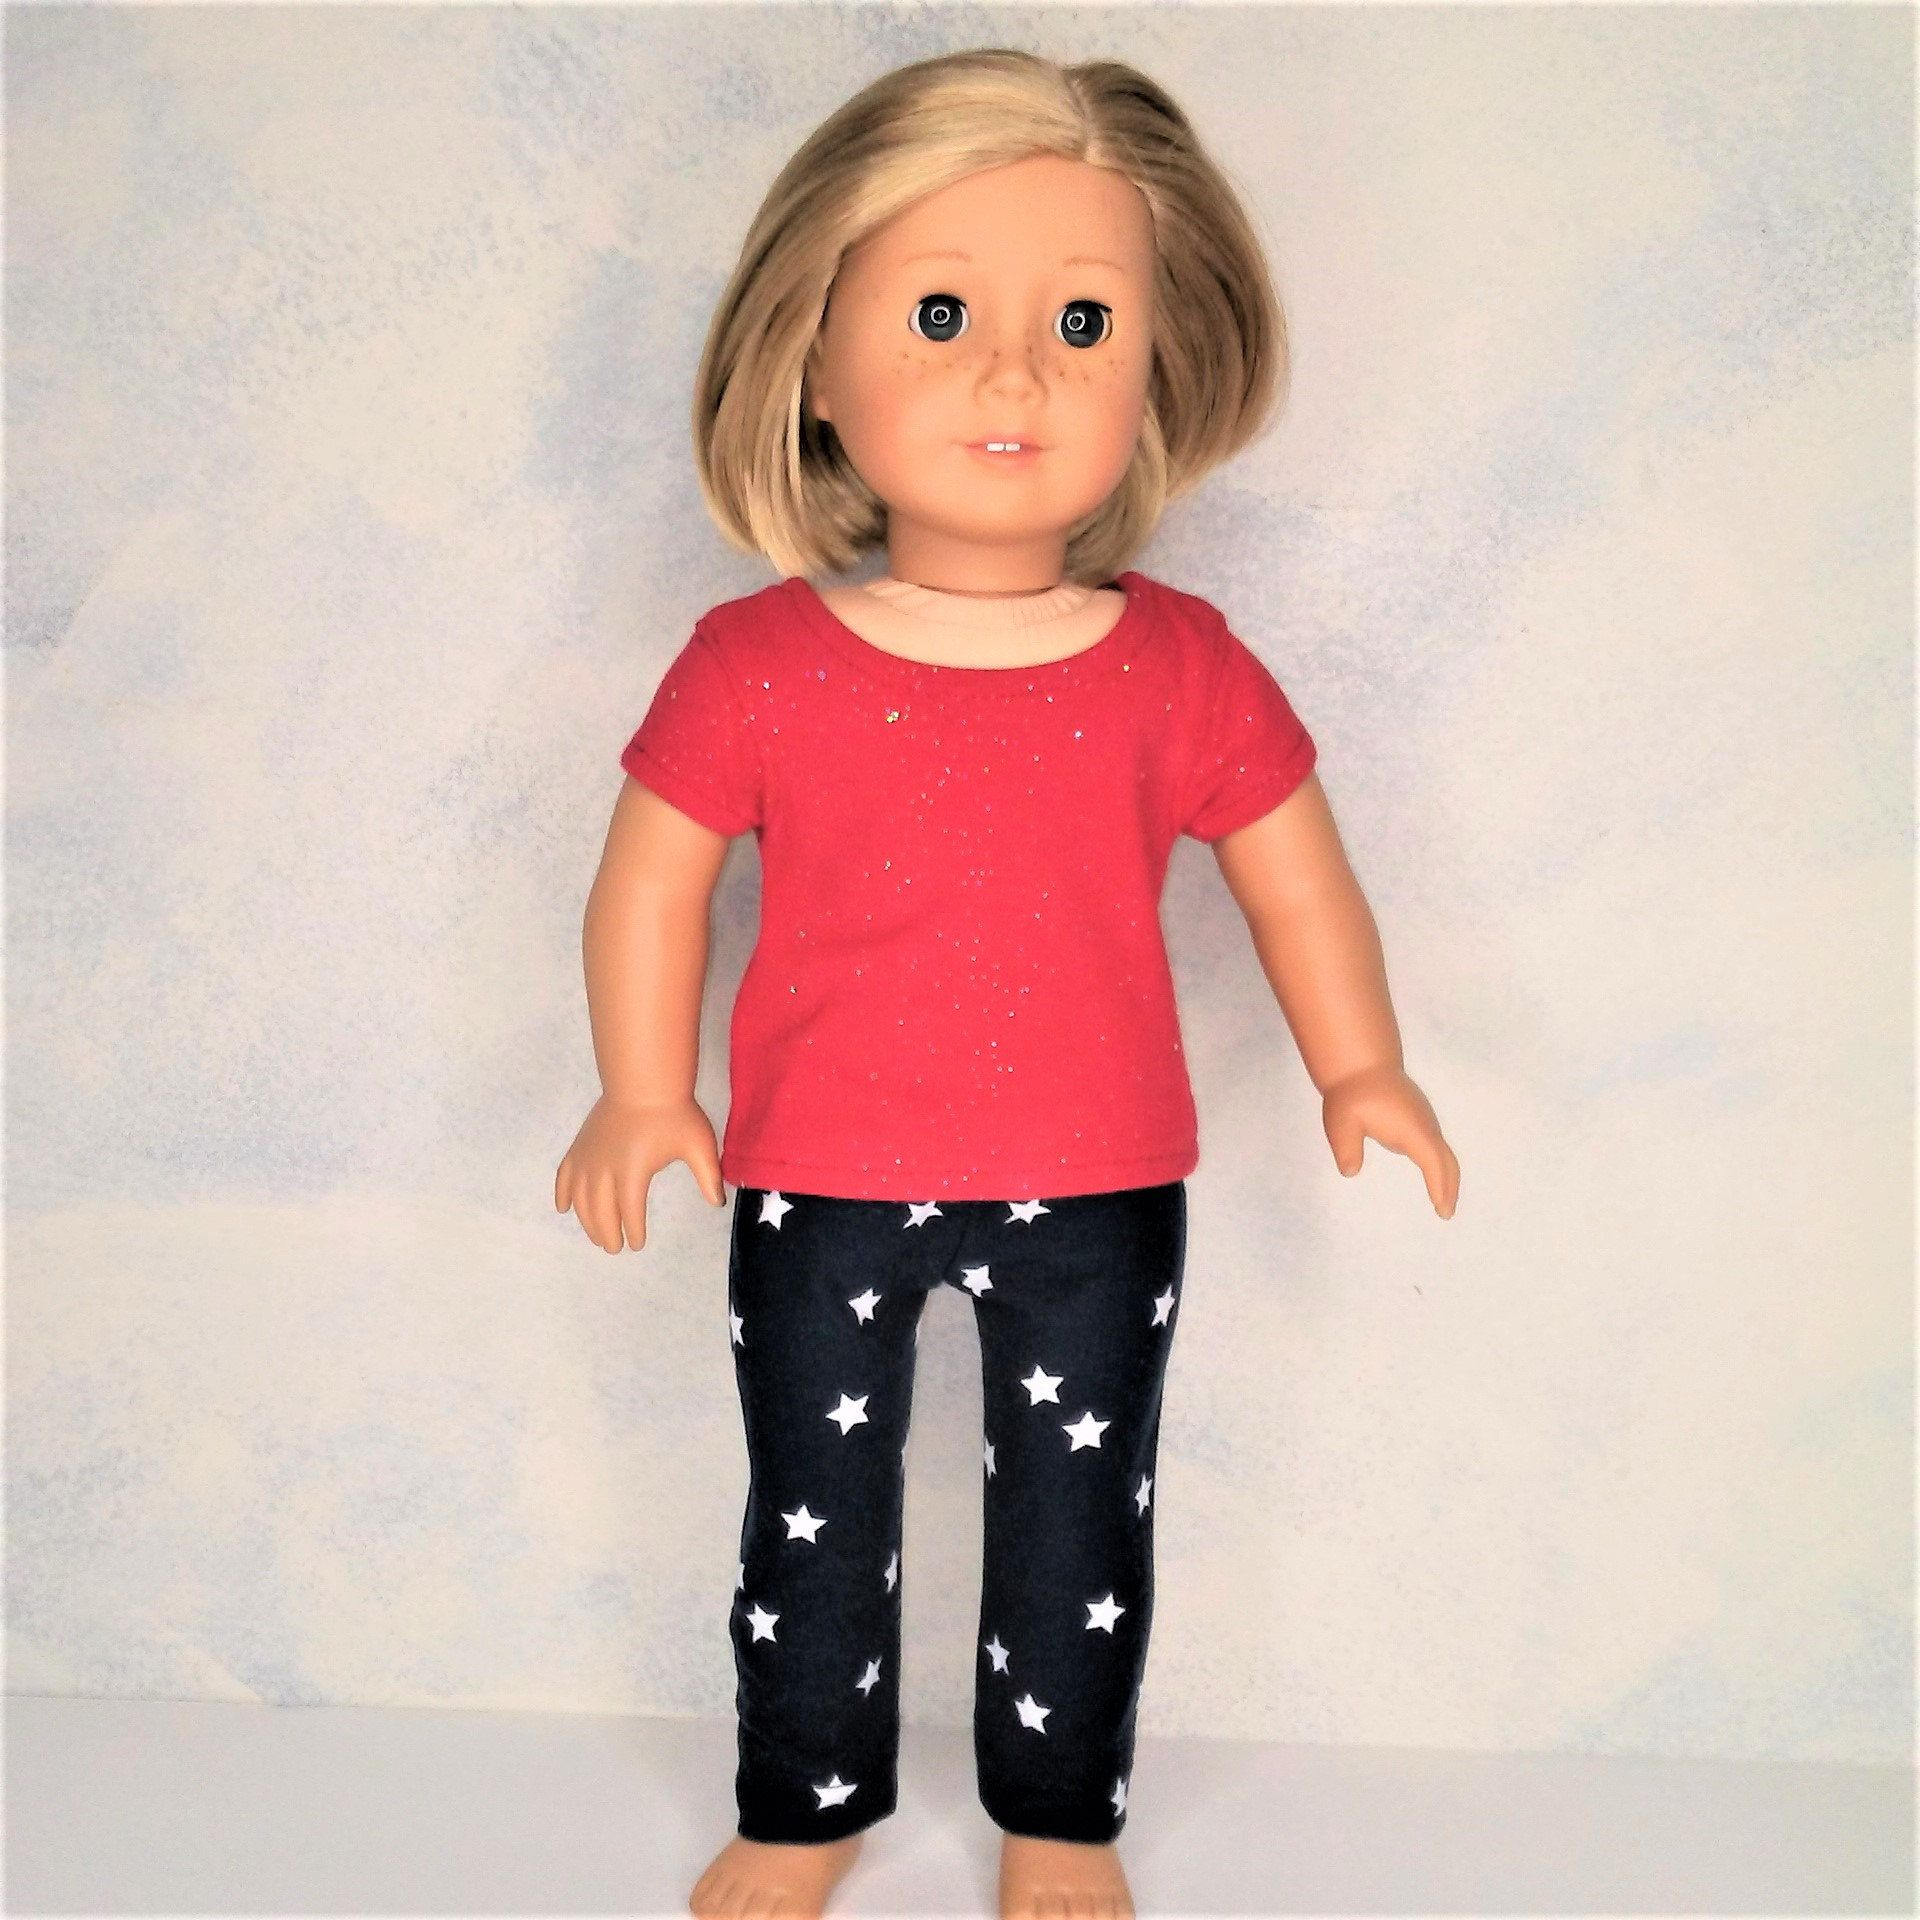 Patriotic Shorts Set for American Girl Dolls 18 Inch Doll Clothes